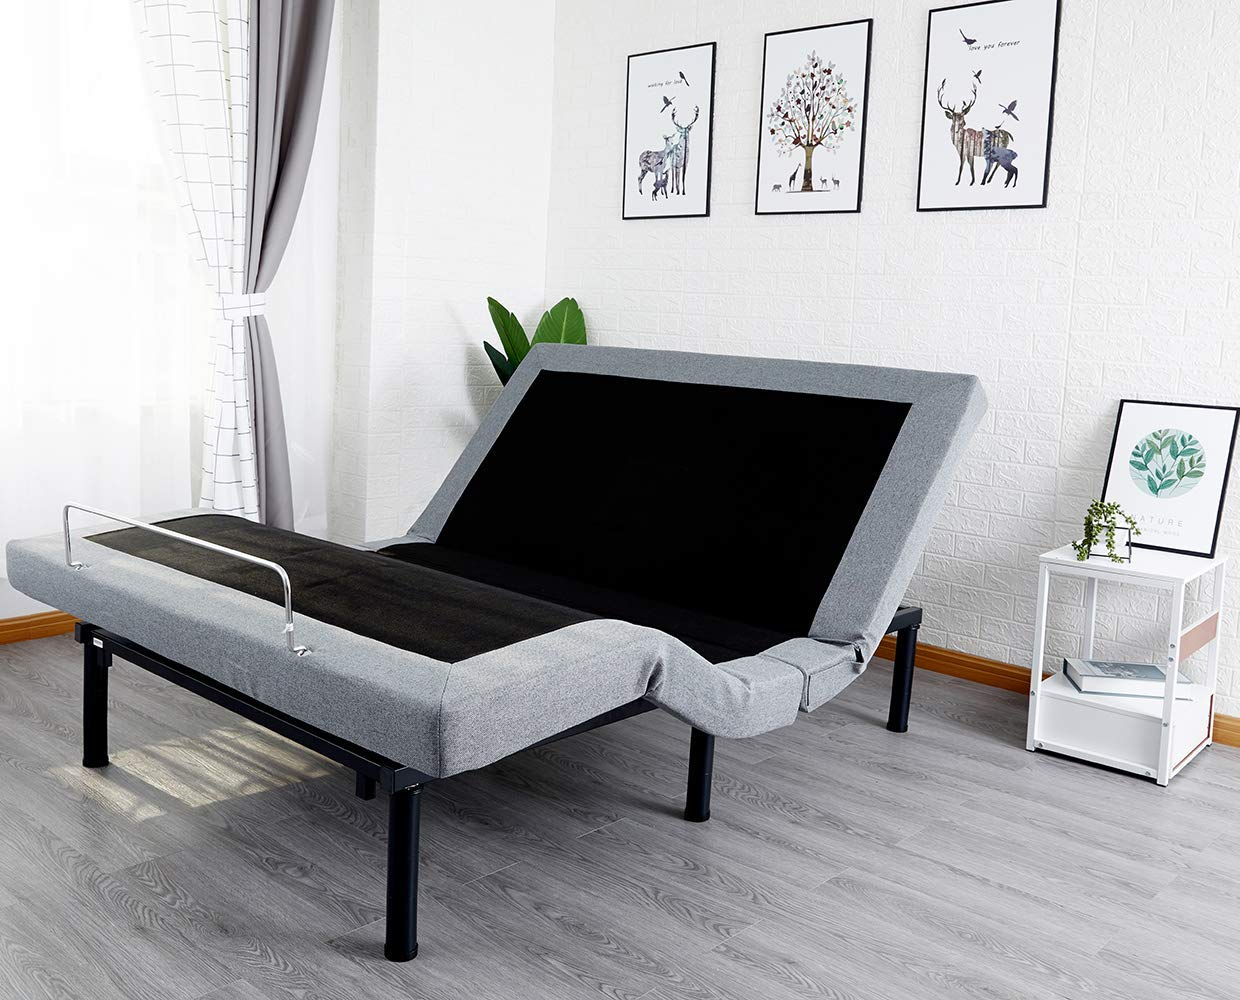 Comsuit Adjustable Bed Frame Base | Wireless Remote | Head and Foot Incline | Massage | USB Charge | Under-Bed Lighting | Zero Gravity | No Tools Required Assembly (Queen)